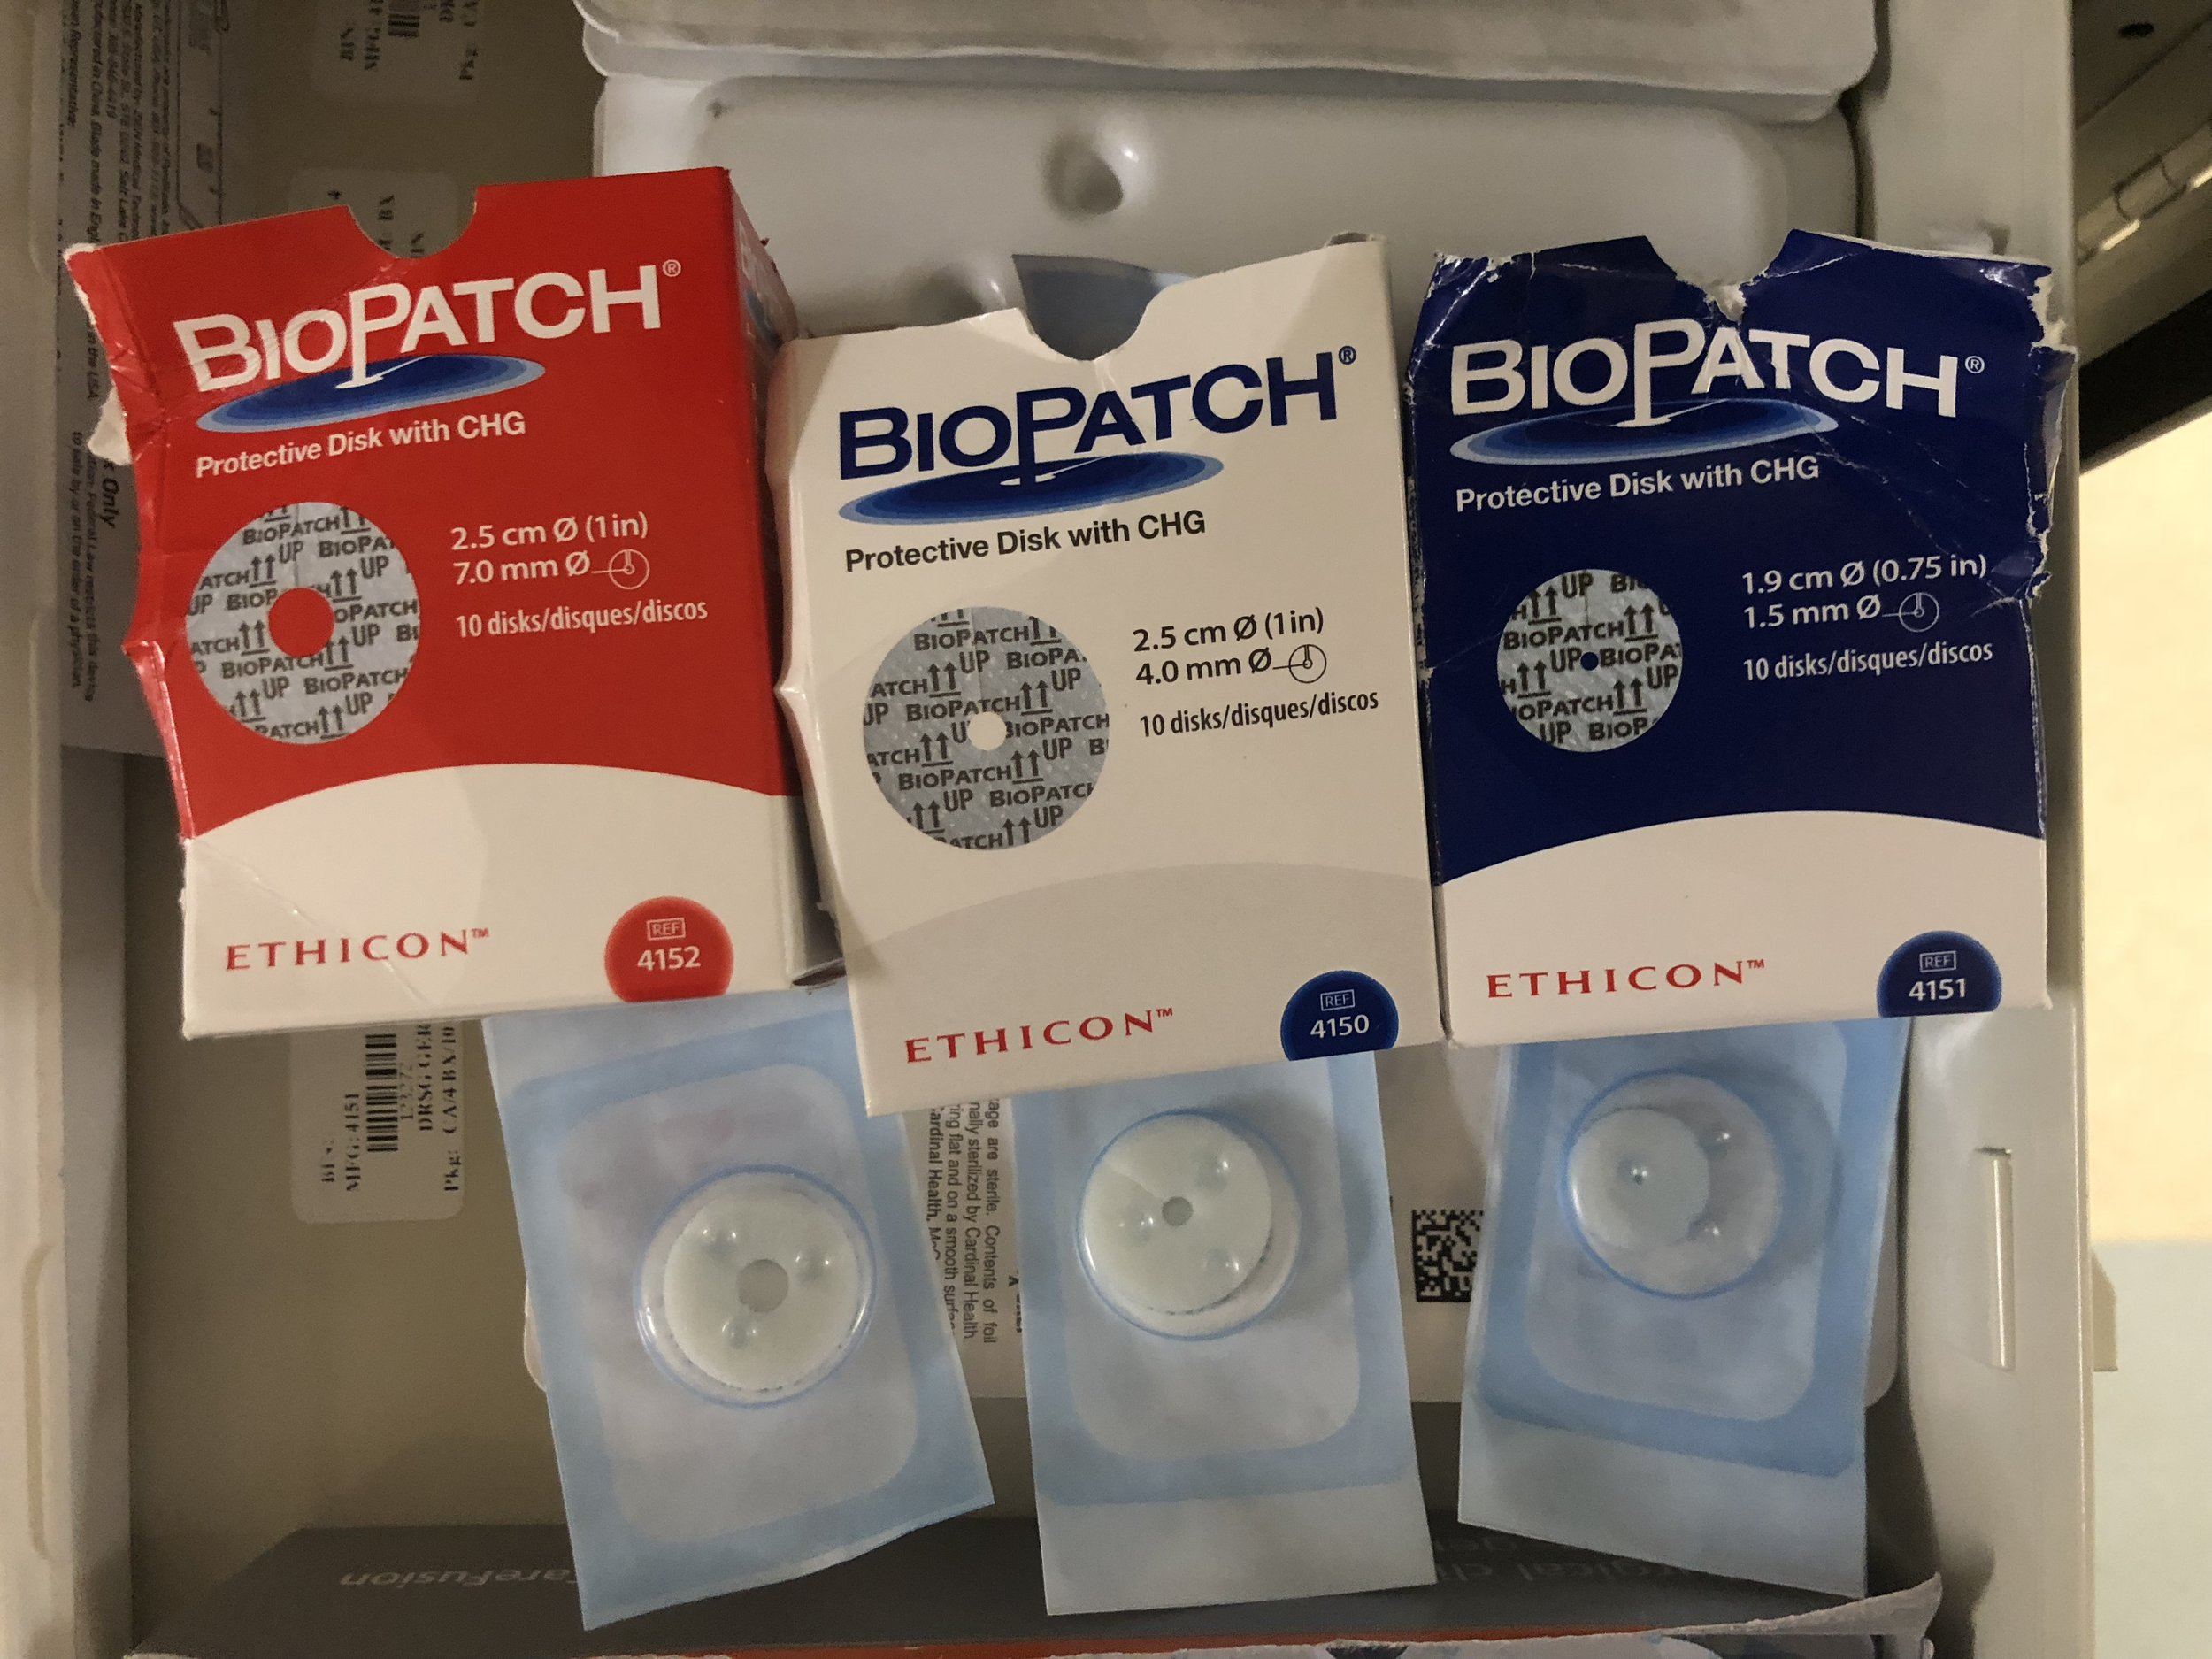 The biopatch is used to help prevent line infection. We stock three sizes - the red (largest) is used for large bore lines such as a vascath or trialysis, the white (middle sized) is used for triple lumen or quad lumen catheters, and the blue (smallest) is used for a-lines